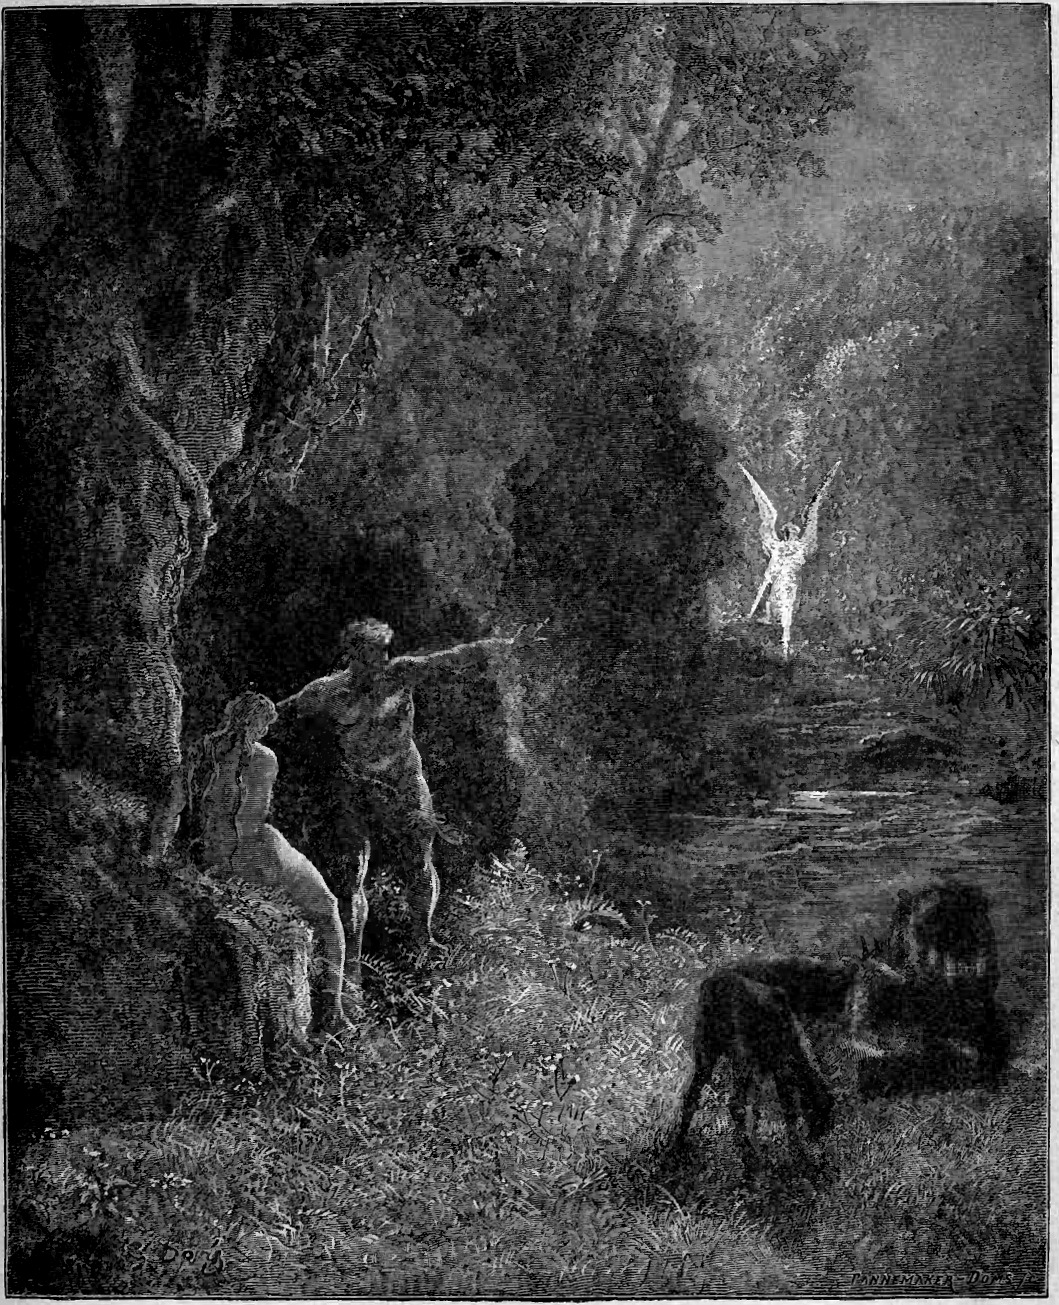 john milton s satan in paradise lost - in john milton's paradise lost, satan, the antihero is a very complex character his character changes dramatically from his first appearance till his last.